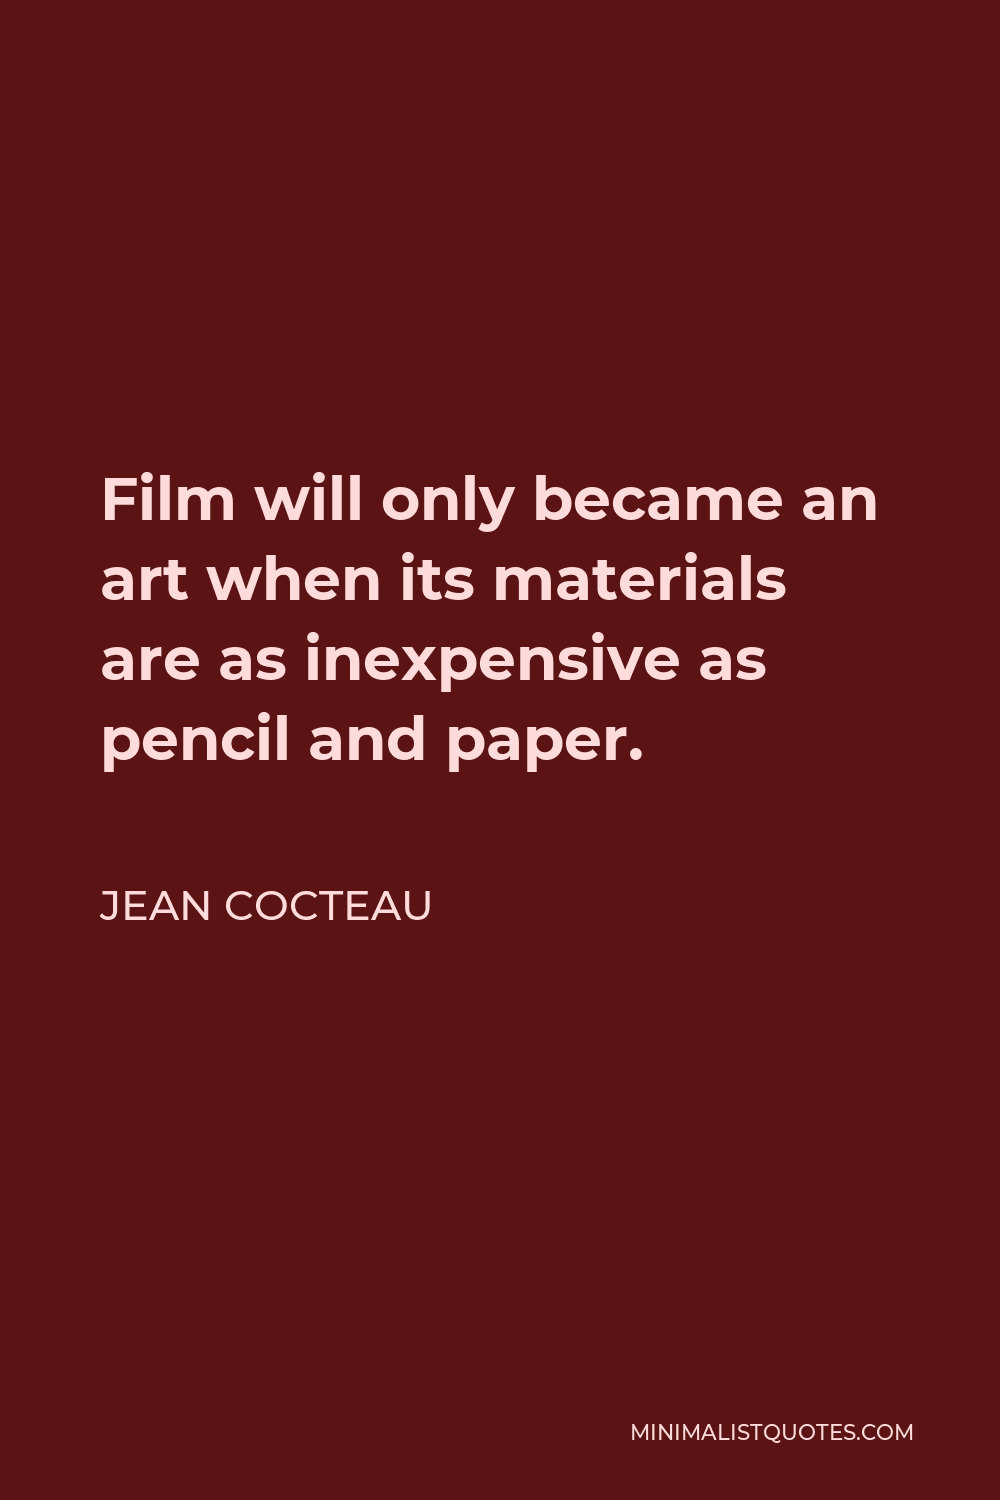 Jean Cocteau Quote - Film will only became an art when its materials are as inexpensive as pencil and paper.